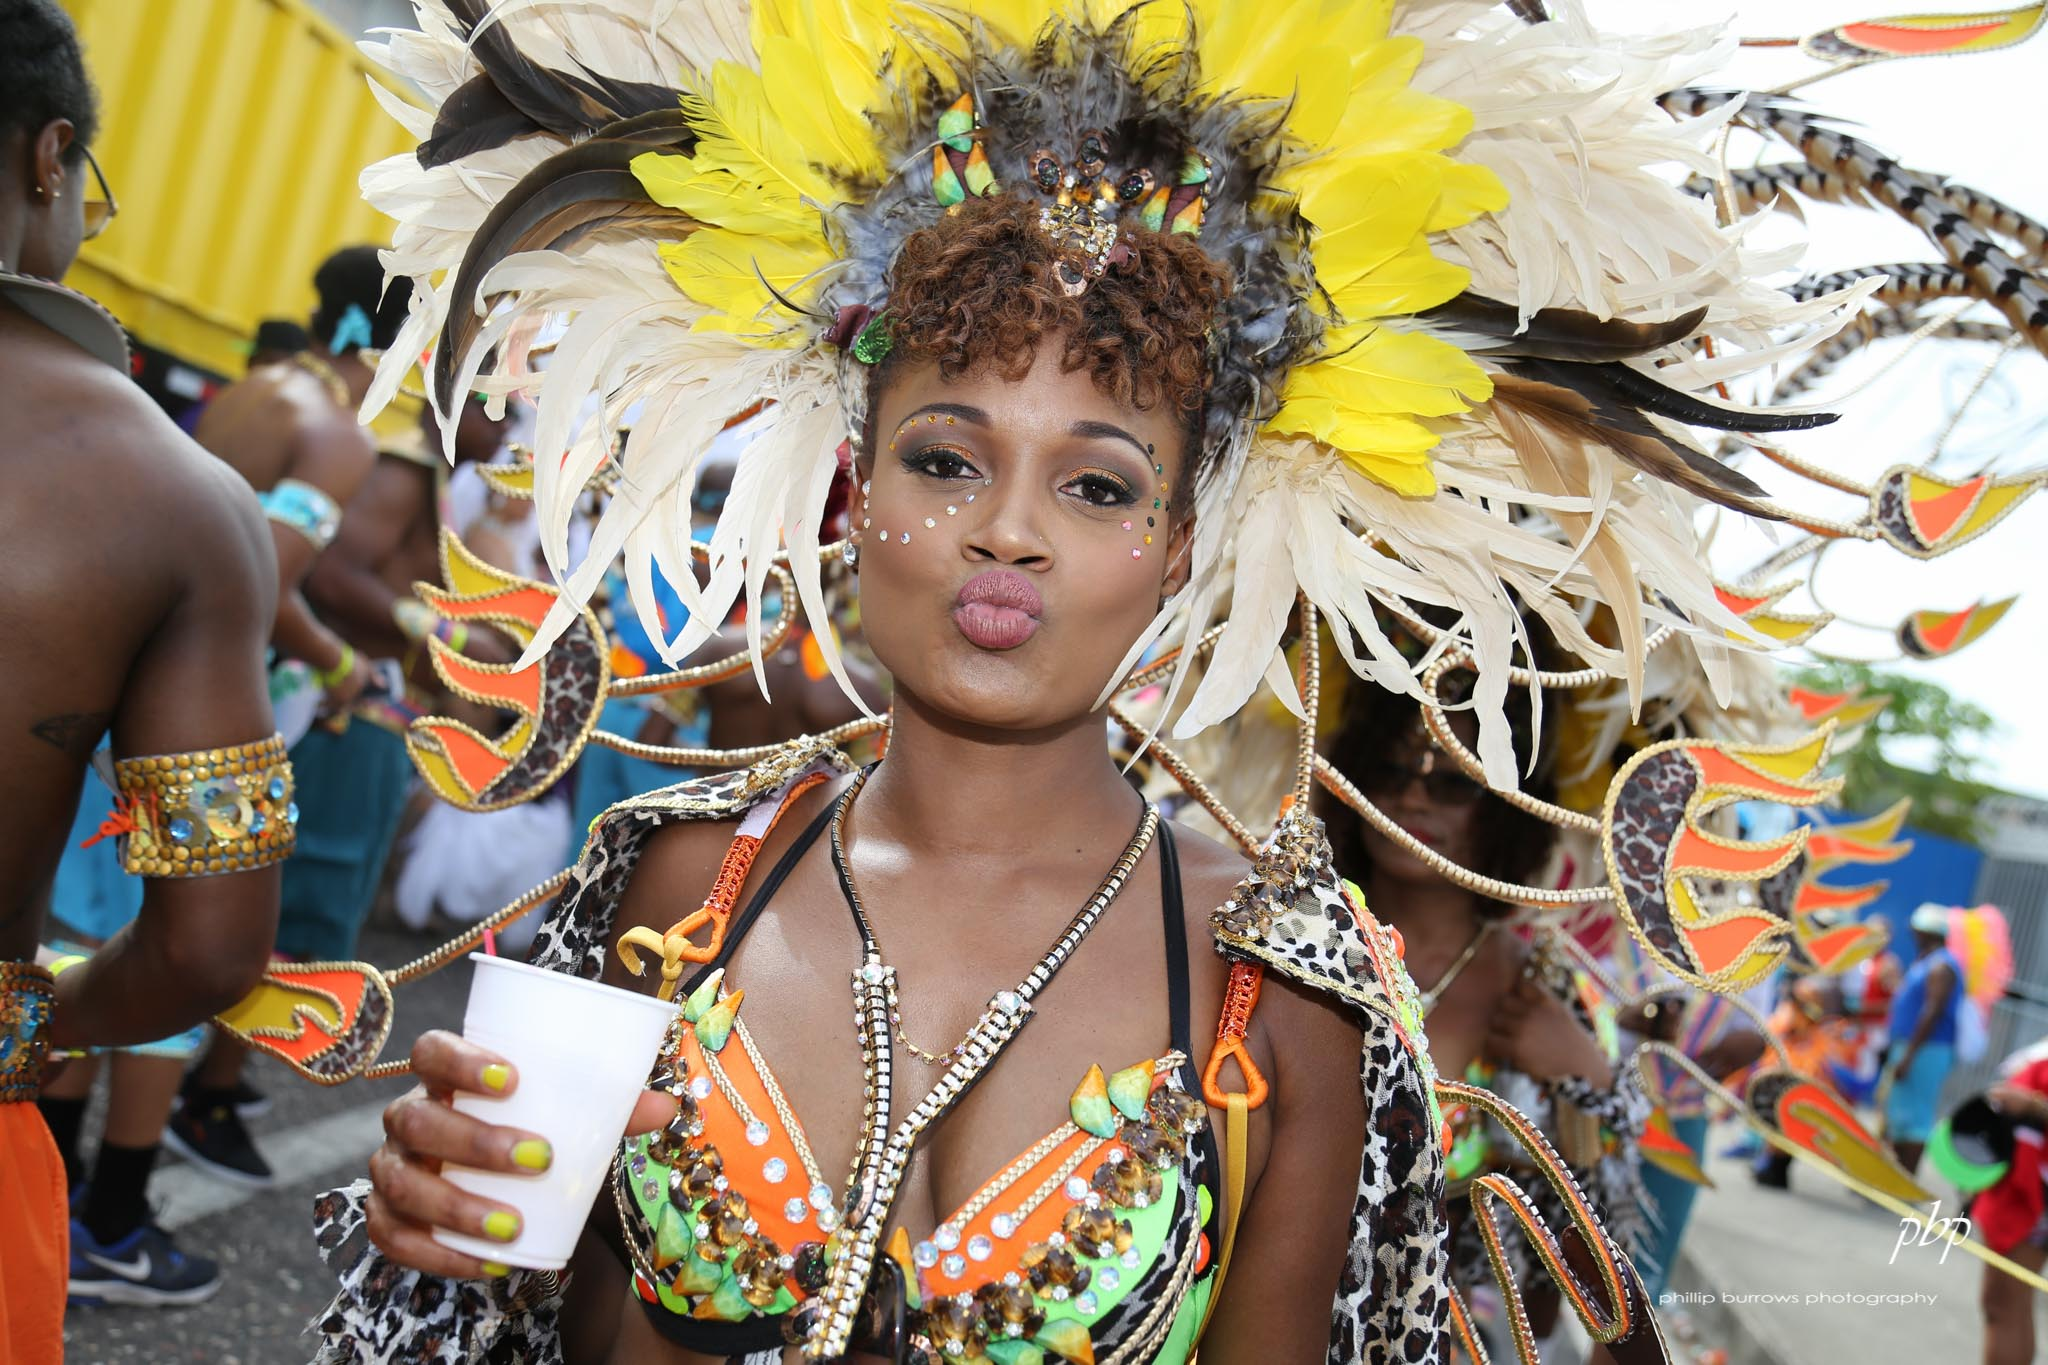 The Culture of Trinidad